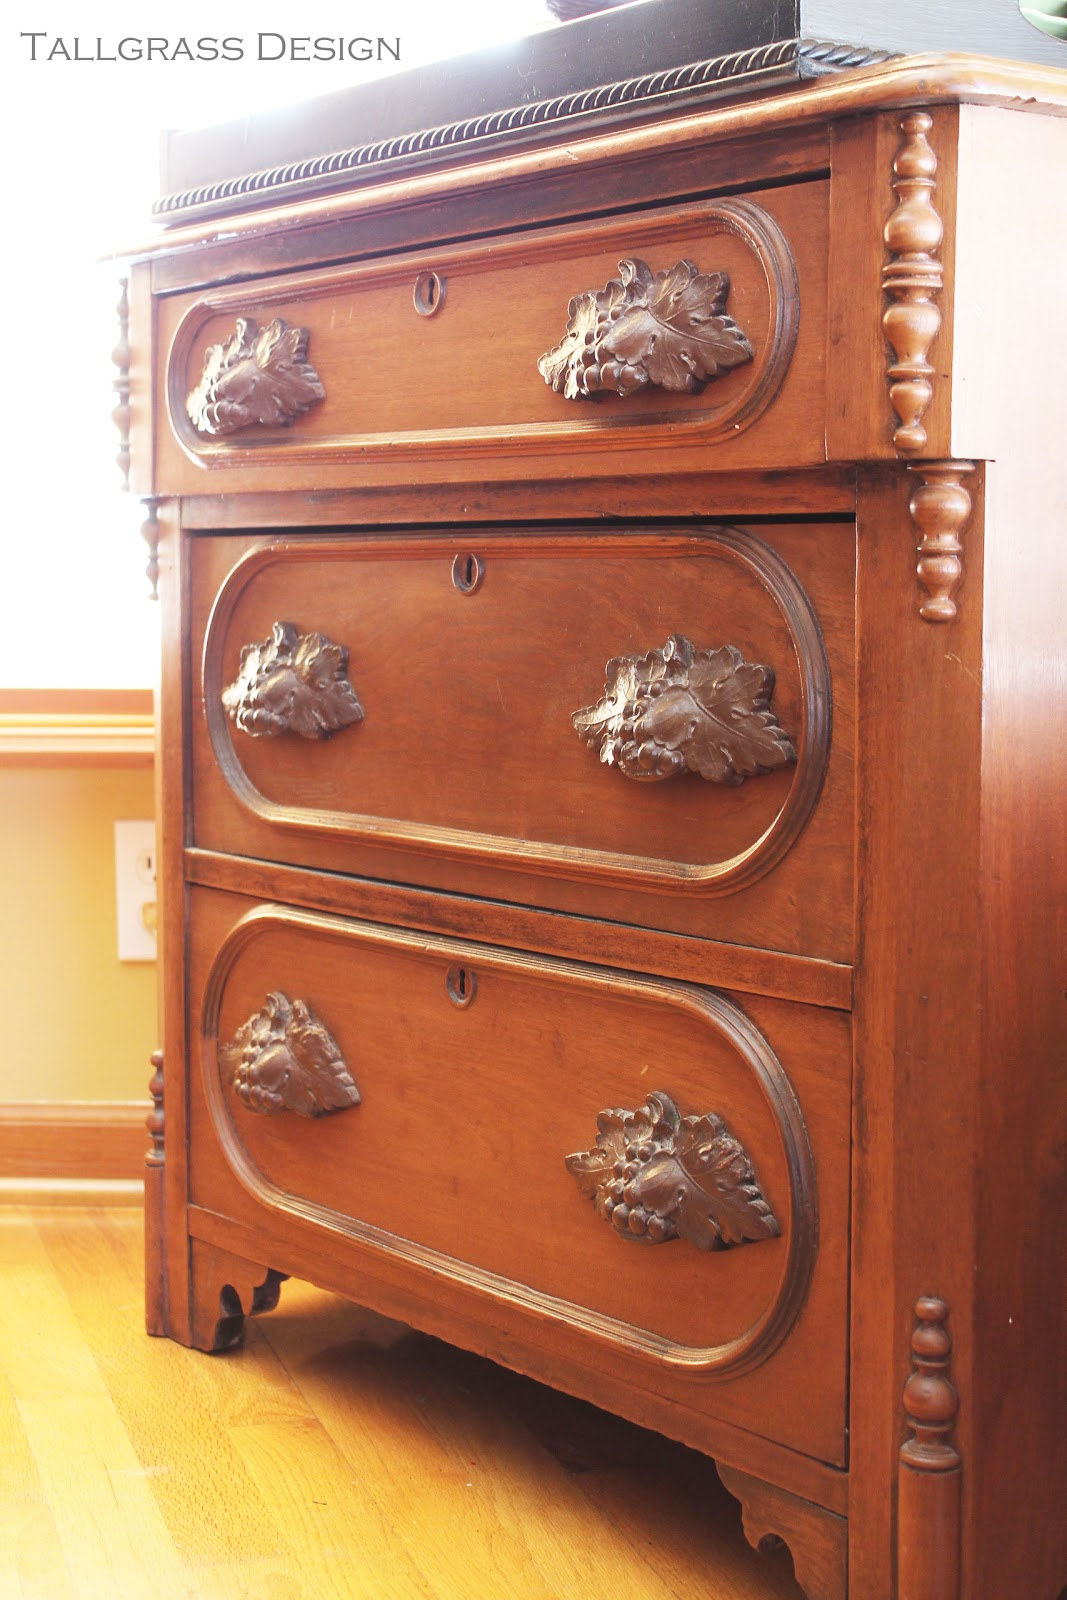 fl case drawer storage commodes english victorian condition of f chest beach for excellent campaign antique sale in drawers furniture id palm l chests pine pieces